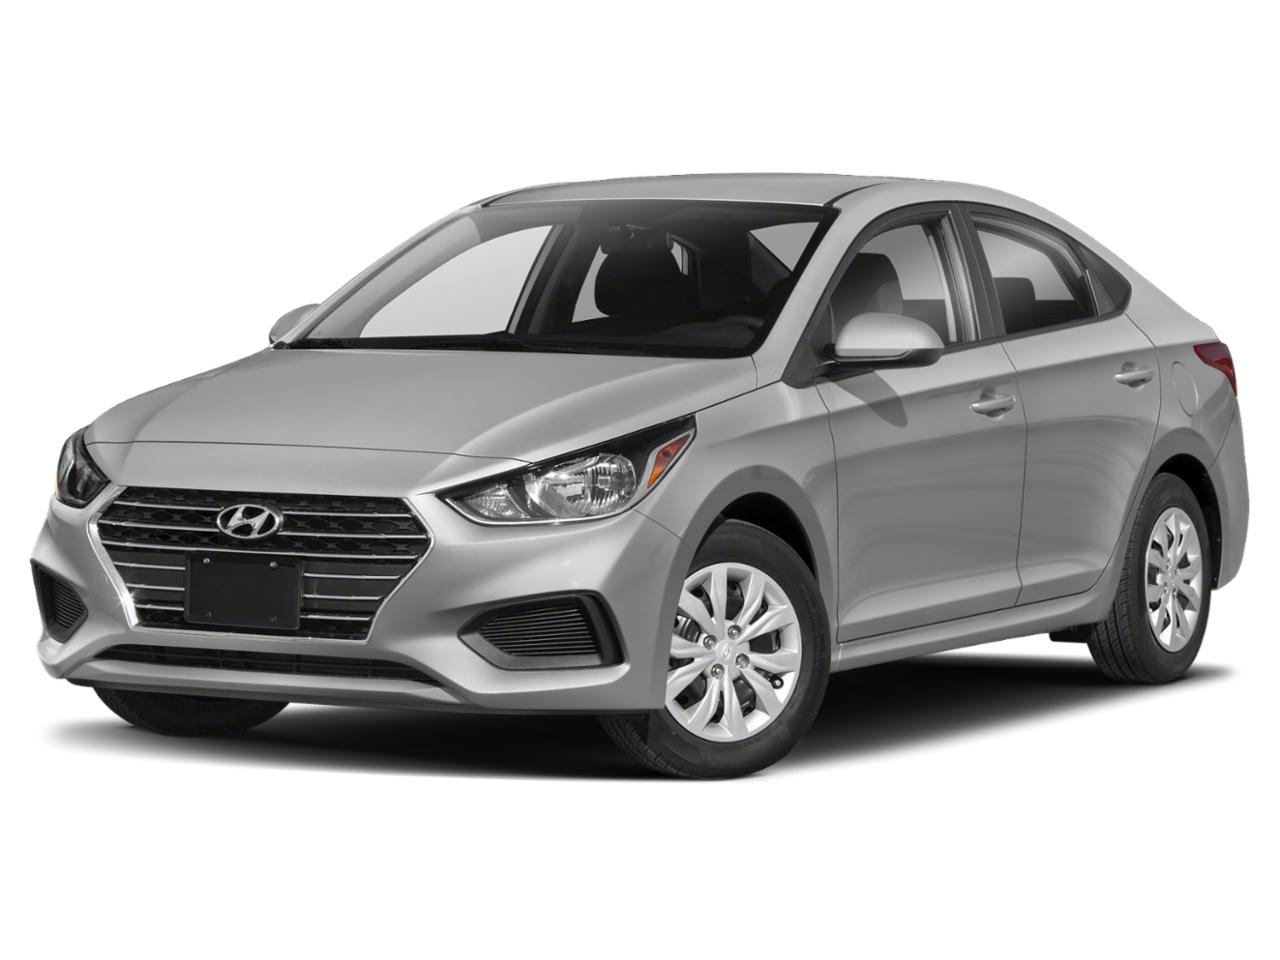 2021 Hyundai Accent Vehicle Photo in O'Fallon, IL 62269